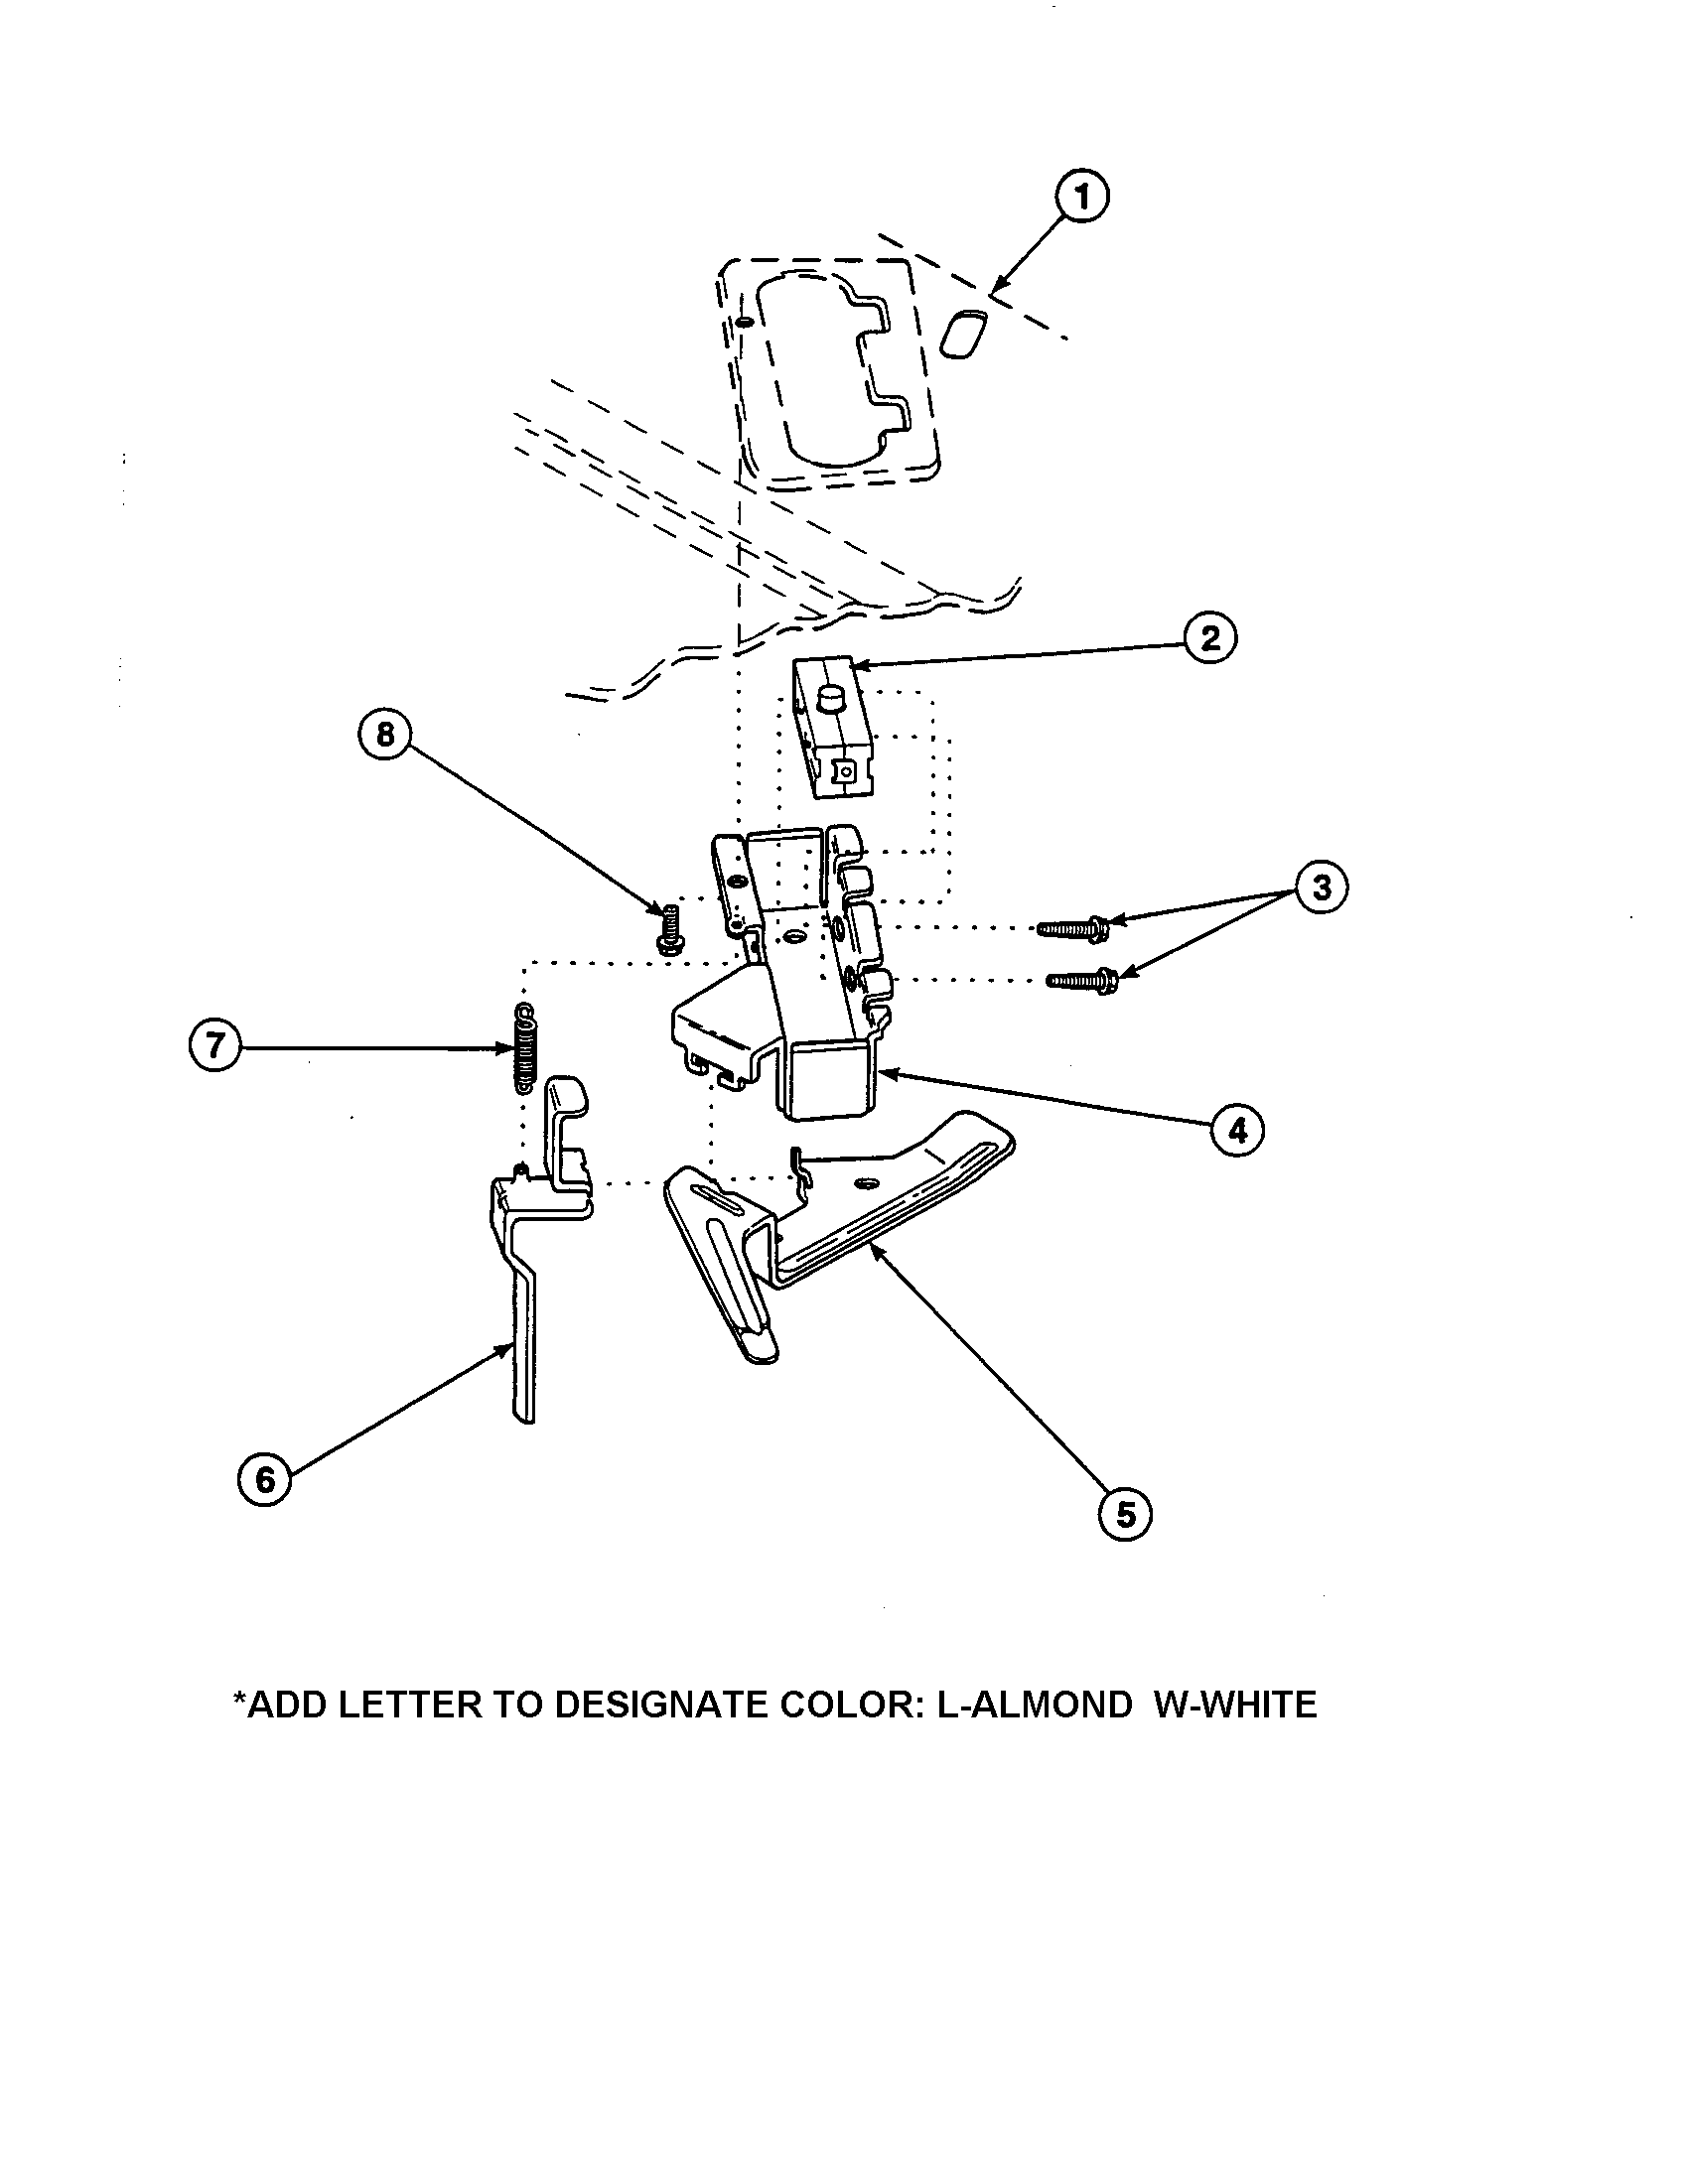 OUT-OF-BALANCE SWITCH Diagram & Parts List for Model